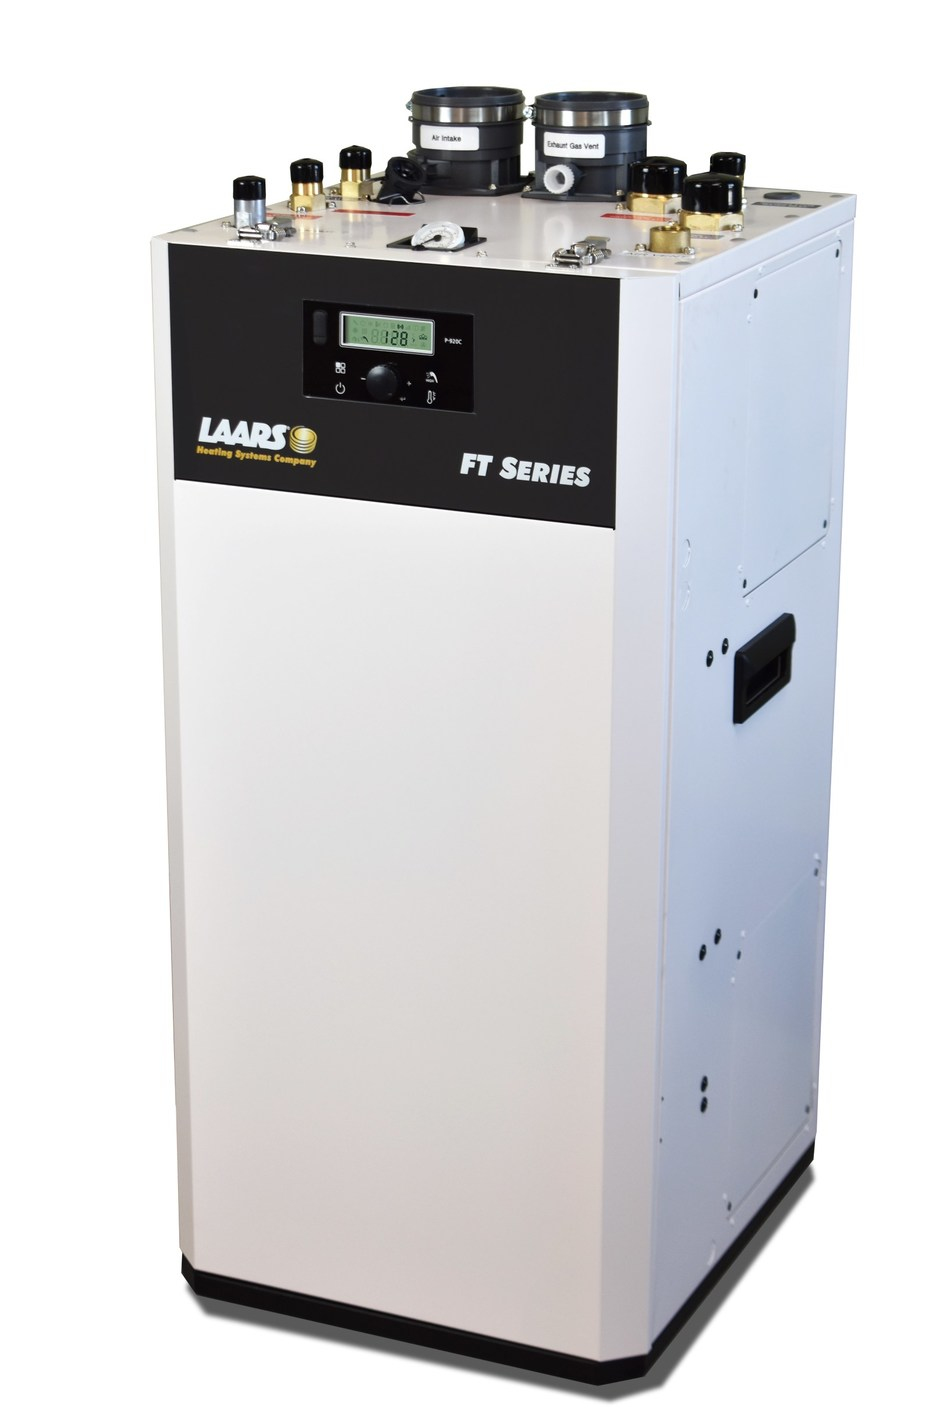 The new Laars® floor-standing FT Series Combination Boiler and Water Heater is the only residential combi boiler that simultaneously supplies abundant home heat and endless hot water without interruption.